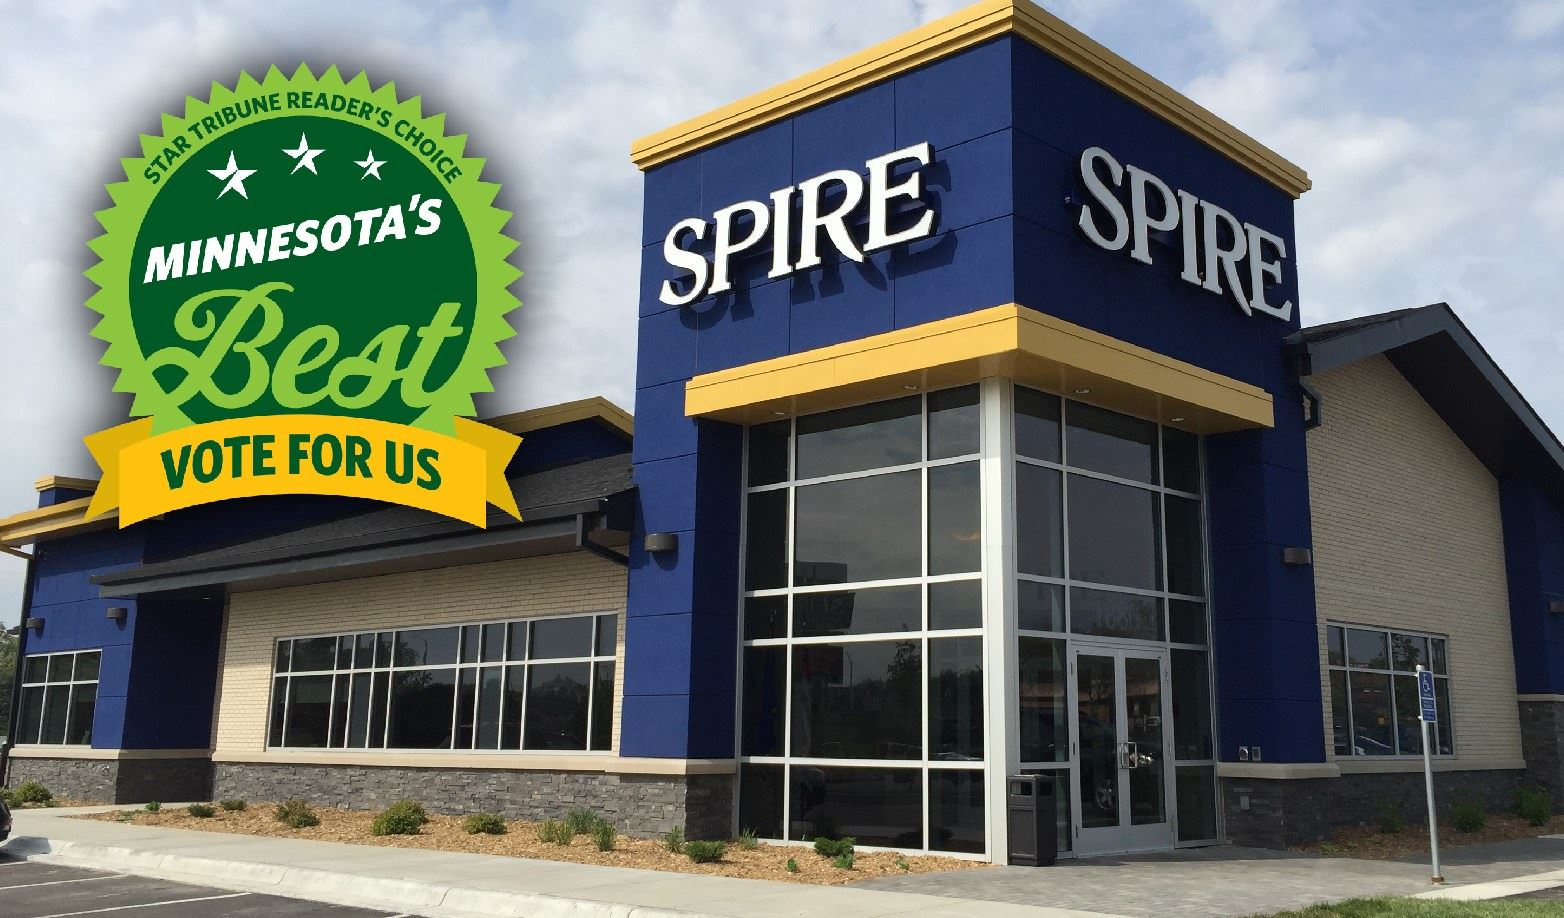 Vote SPIRE as Minnesota's Best!